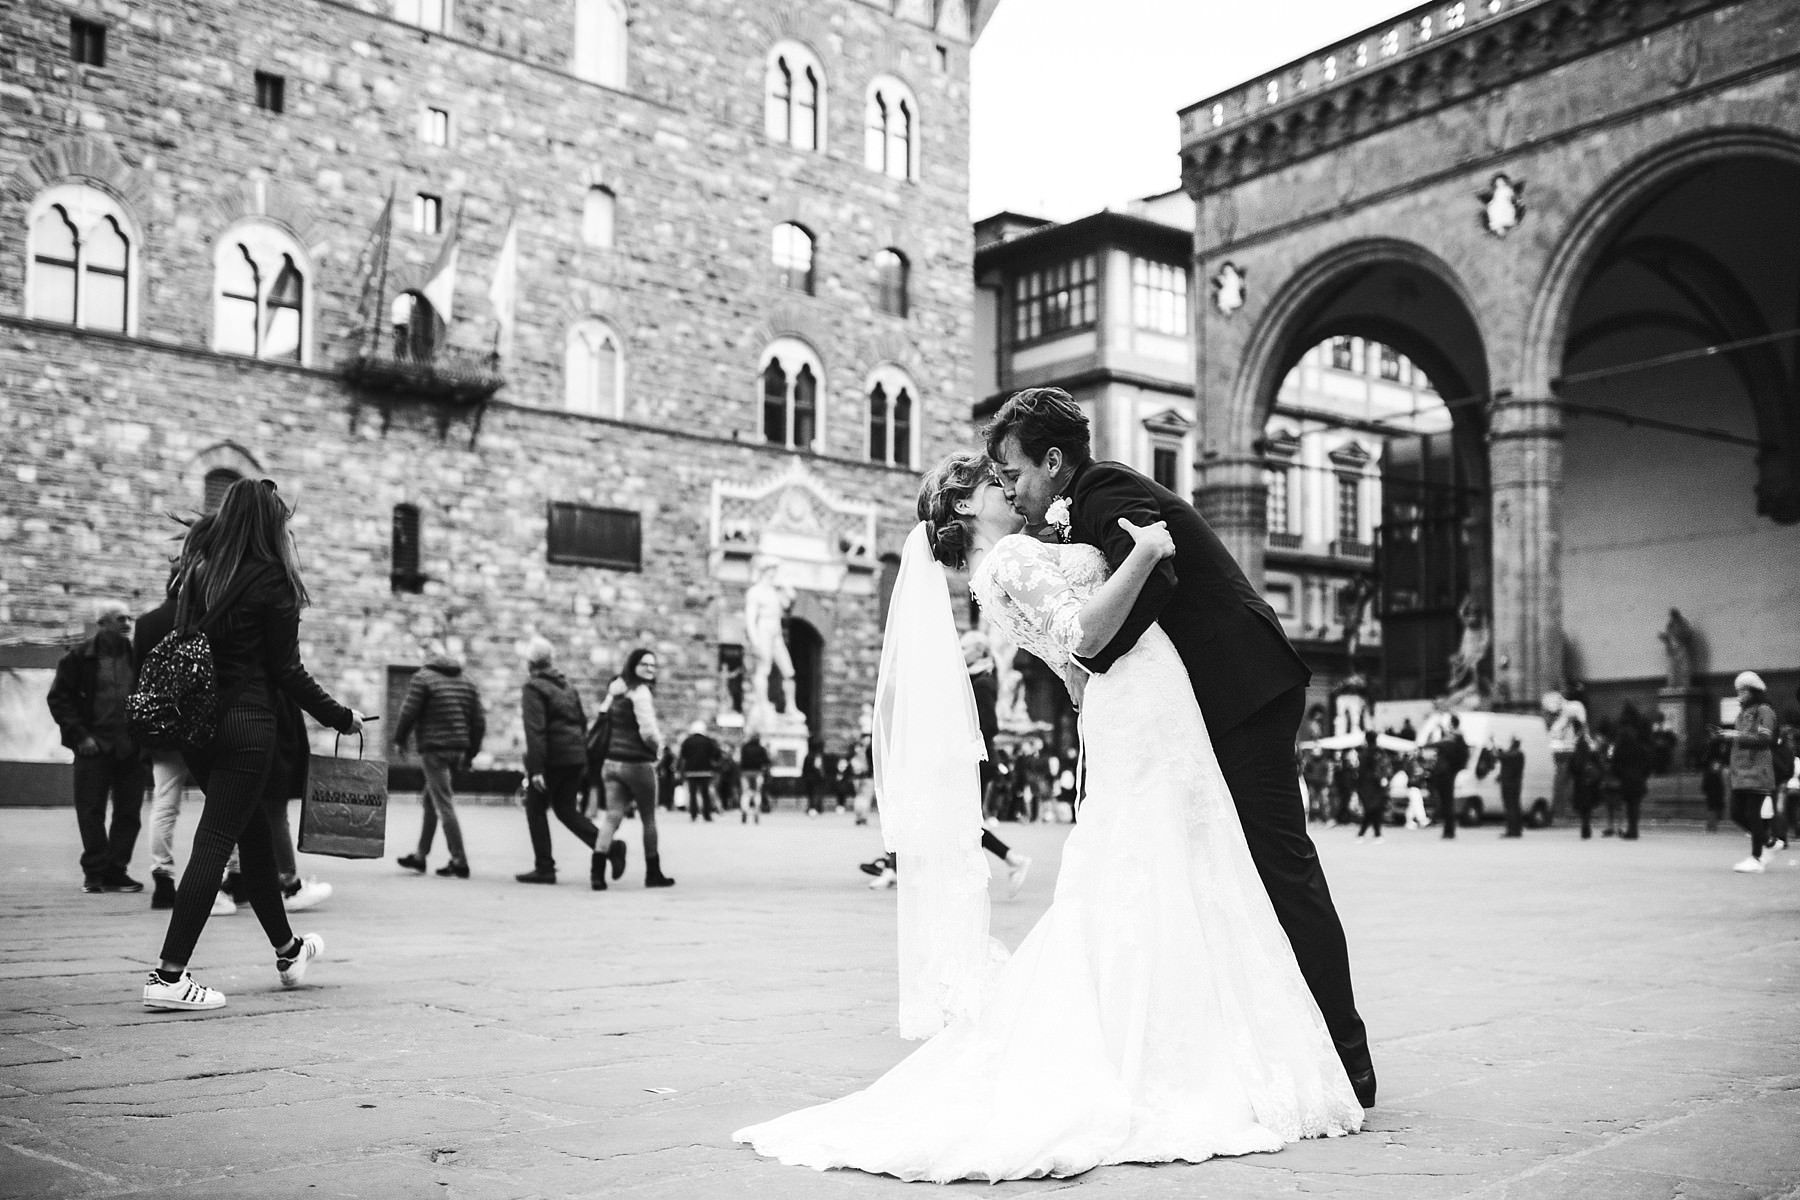 Elegant and intimate wedding photo at Palazzo Vecchio in Piazza della Signoria near Uffizi museum. Intimate and elegant destination wedding at luxury hotel St. Regis Florence